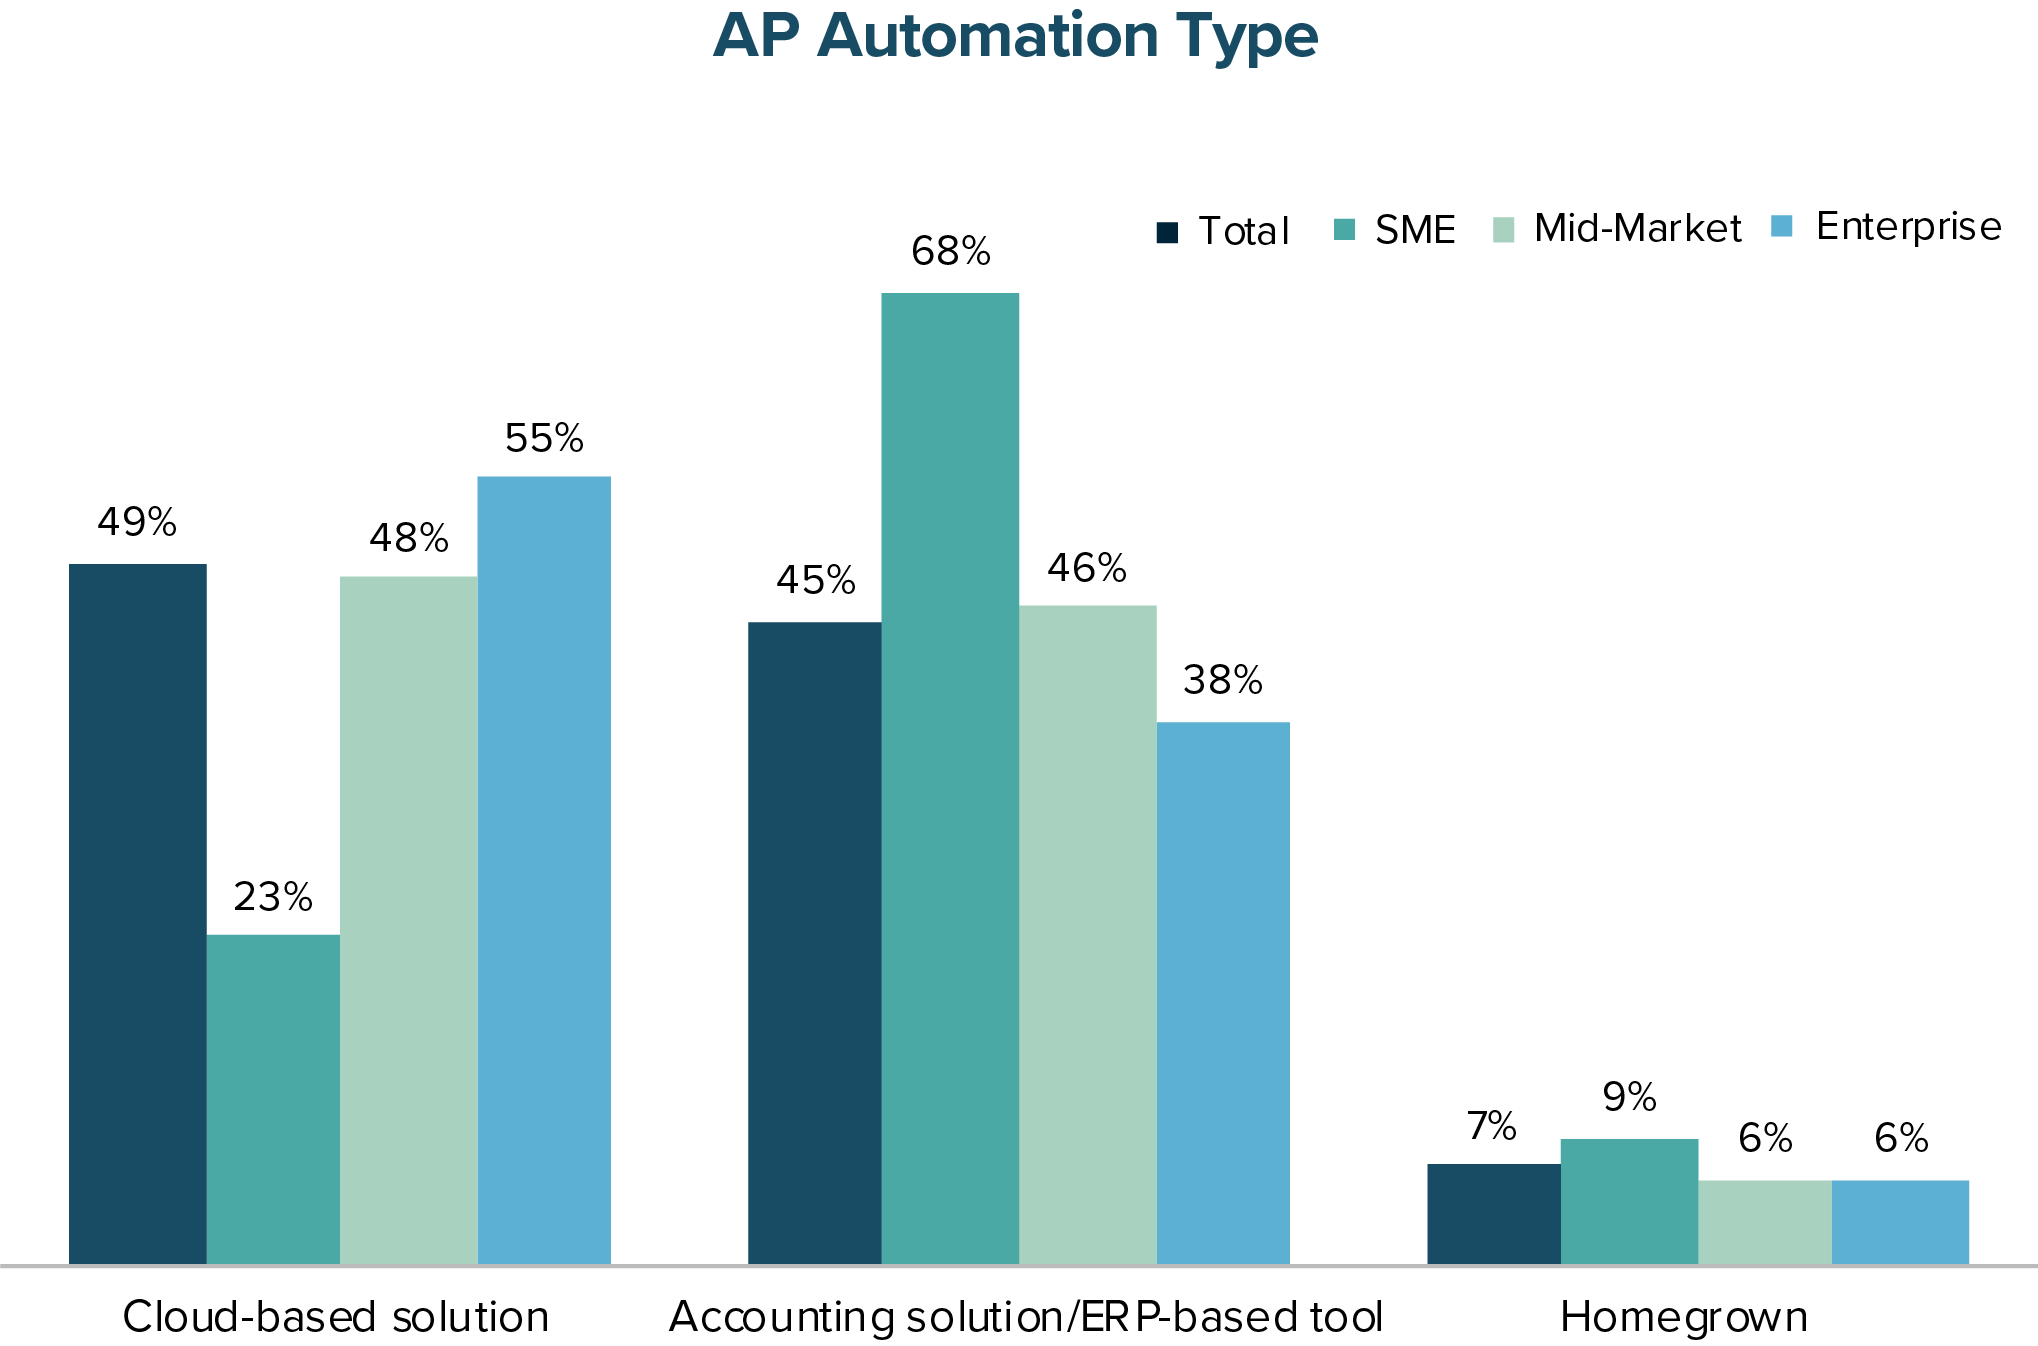 AP Automation Type